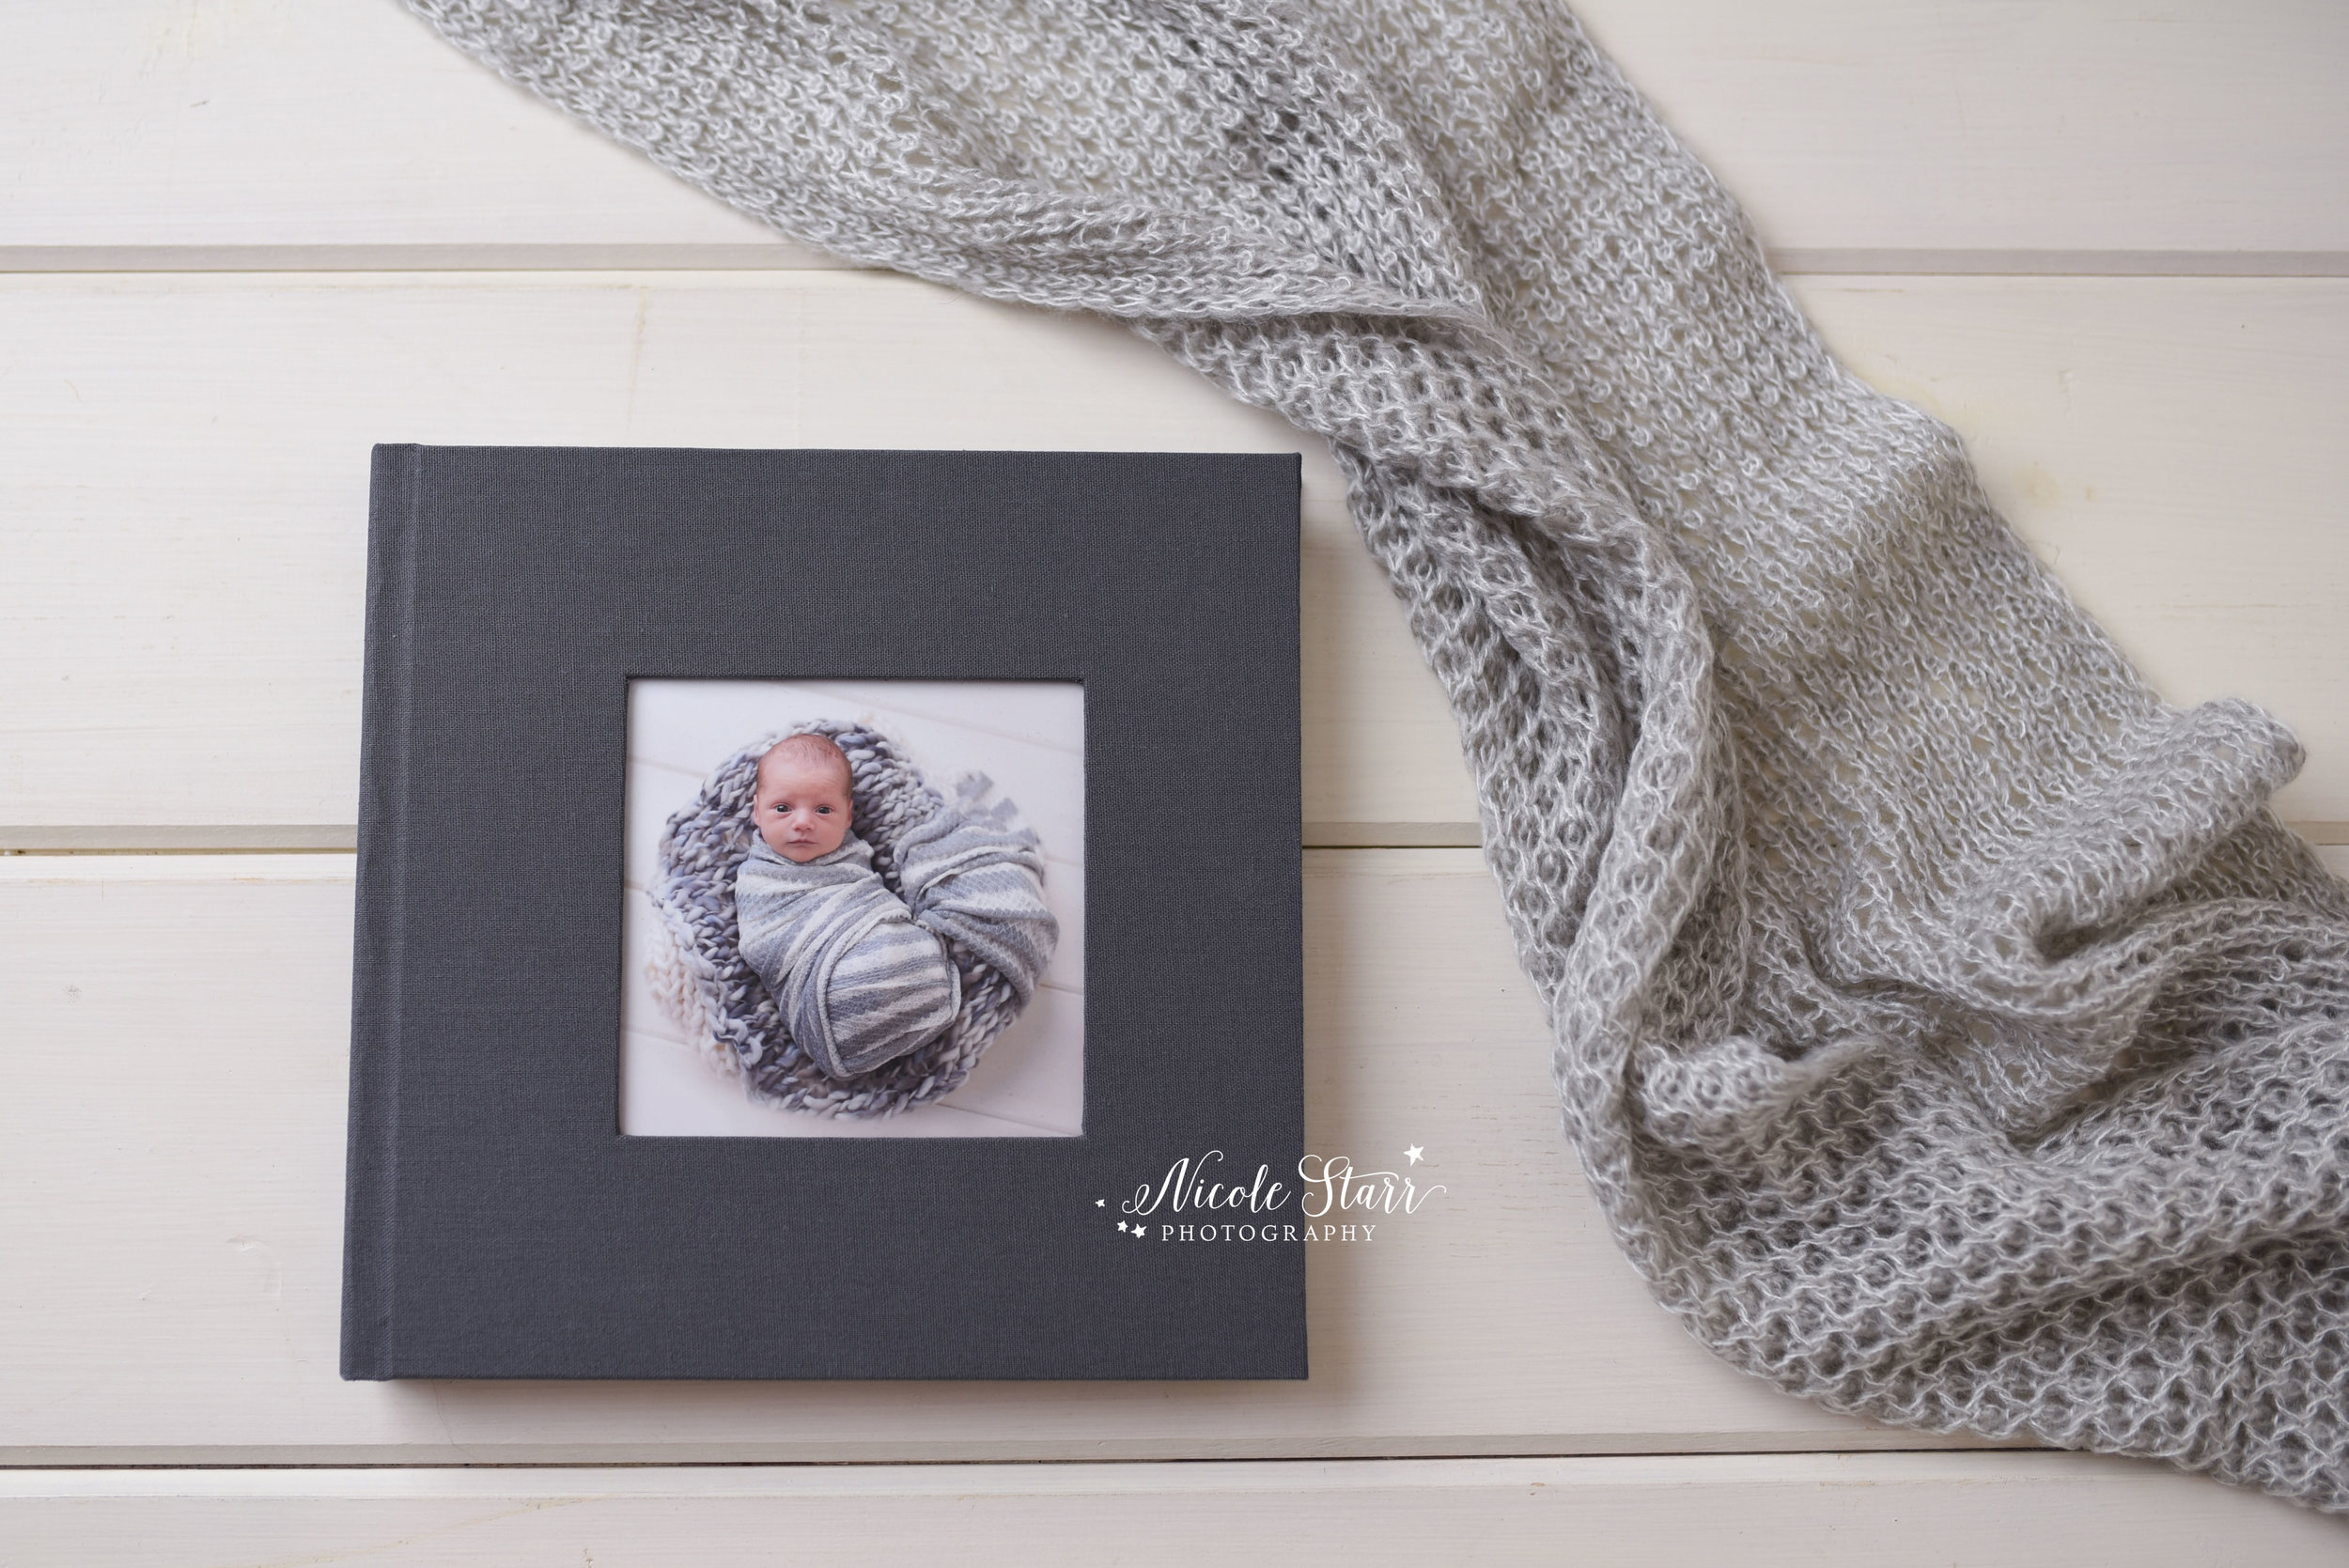 Nicole Starr Photography, fine art album from a studio newborn session